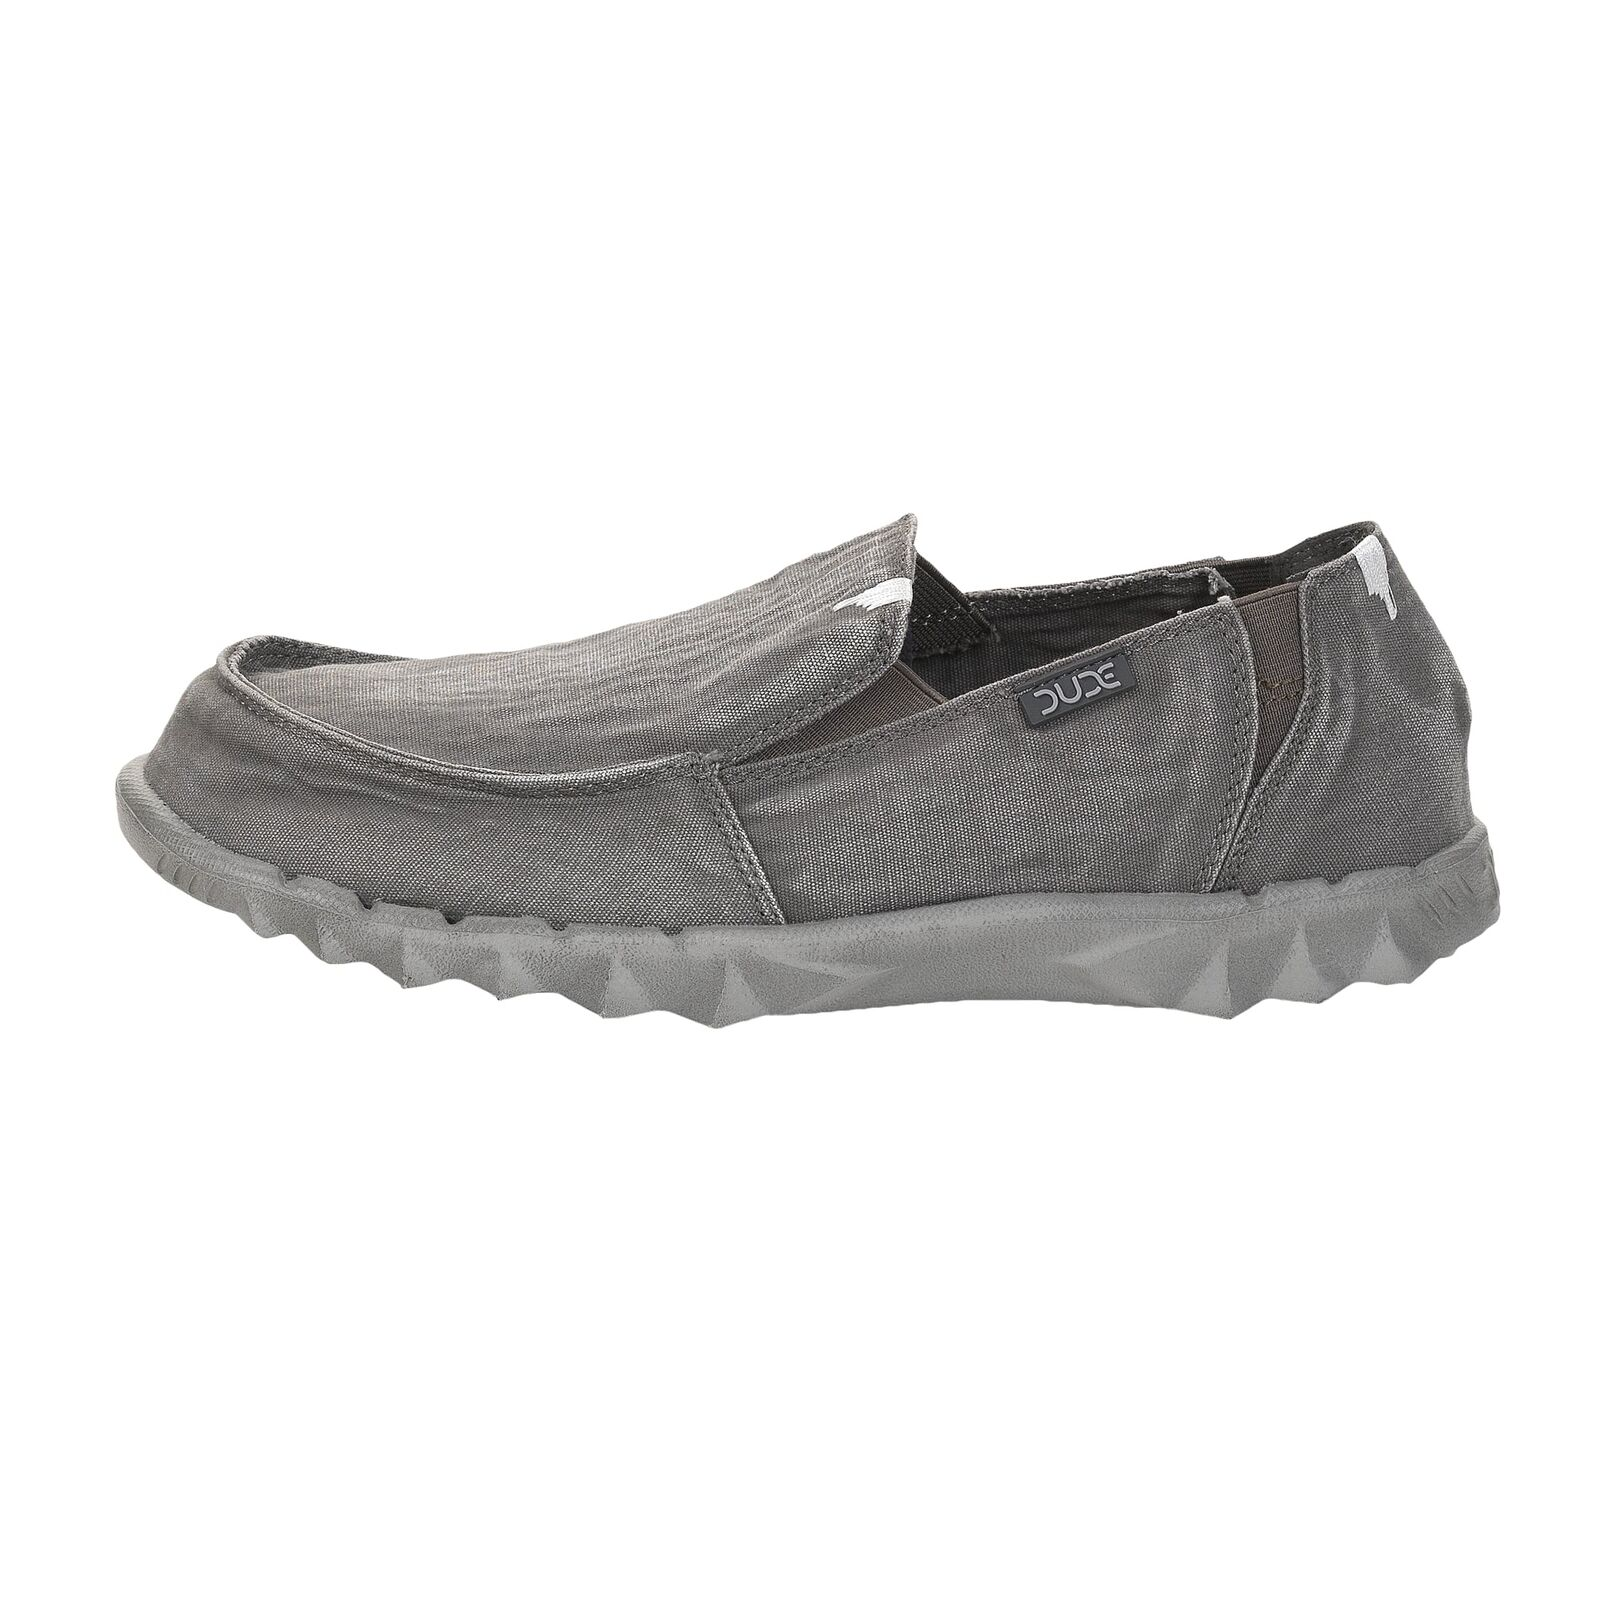 Men's Hey Dude shoes Farty Washed Dark Grey Slip On   Mule